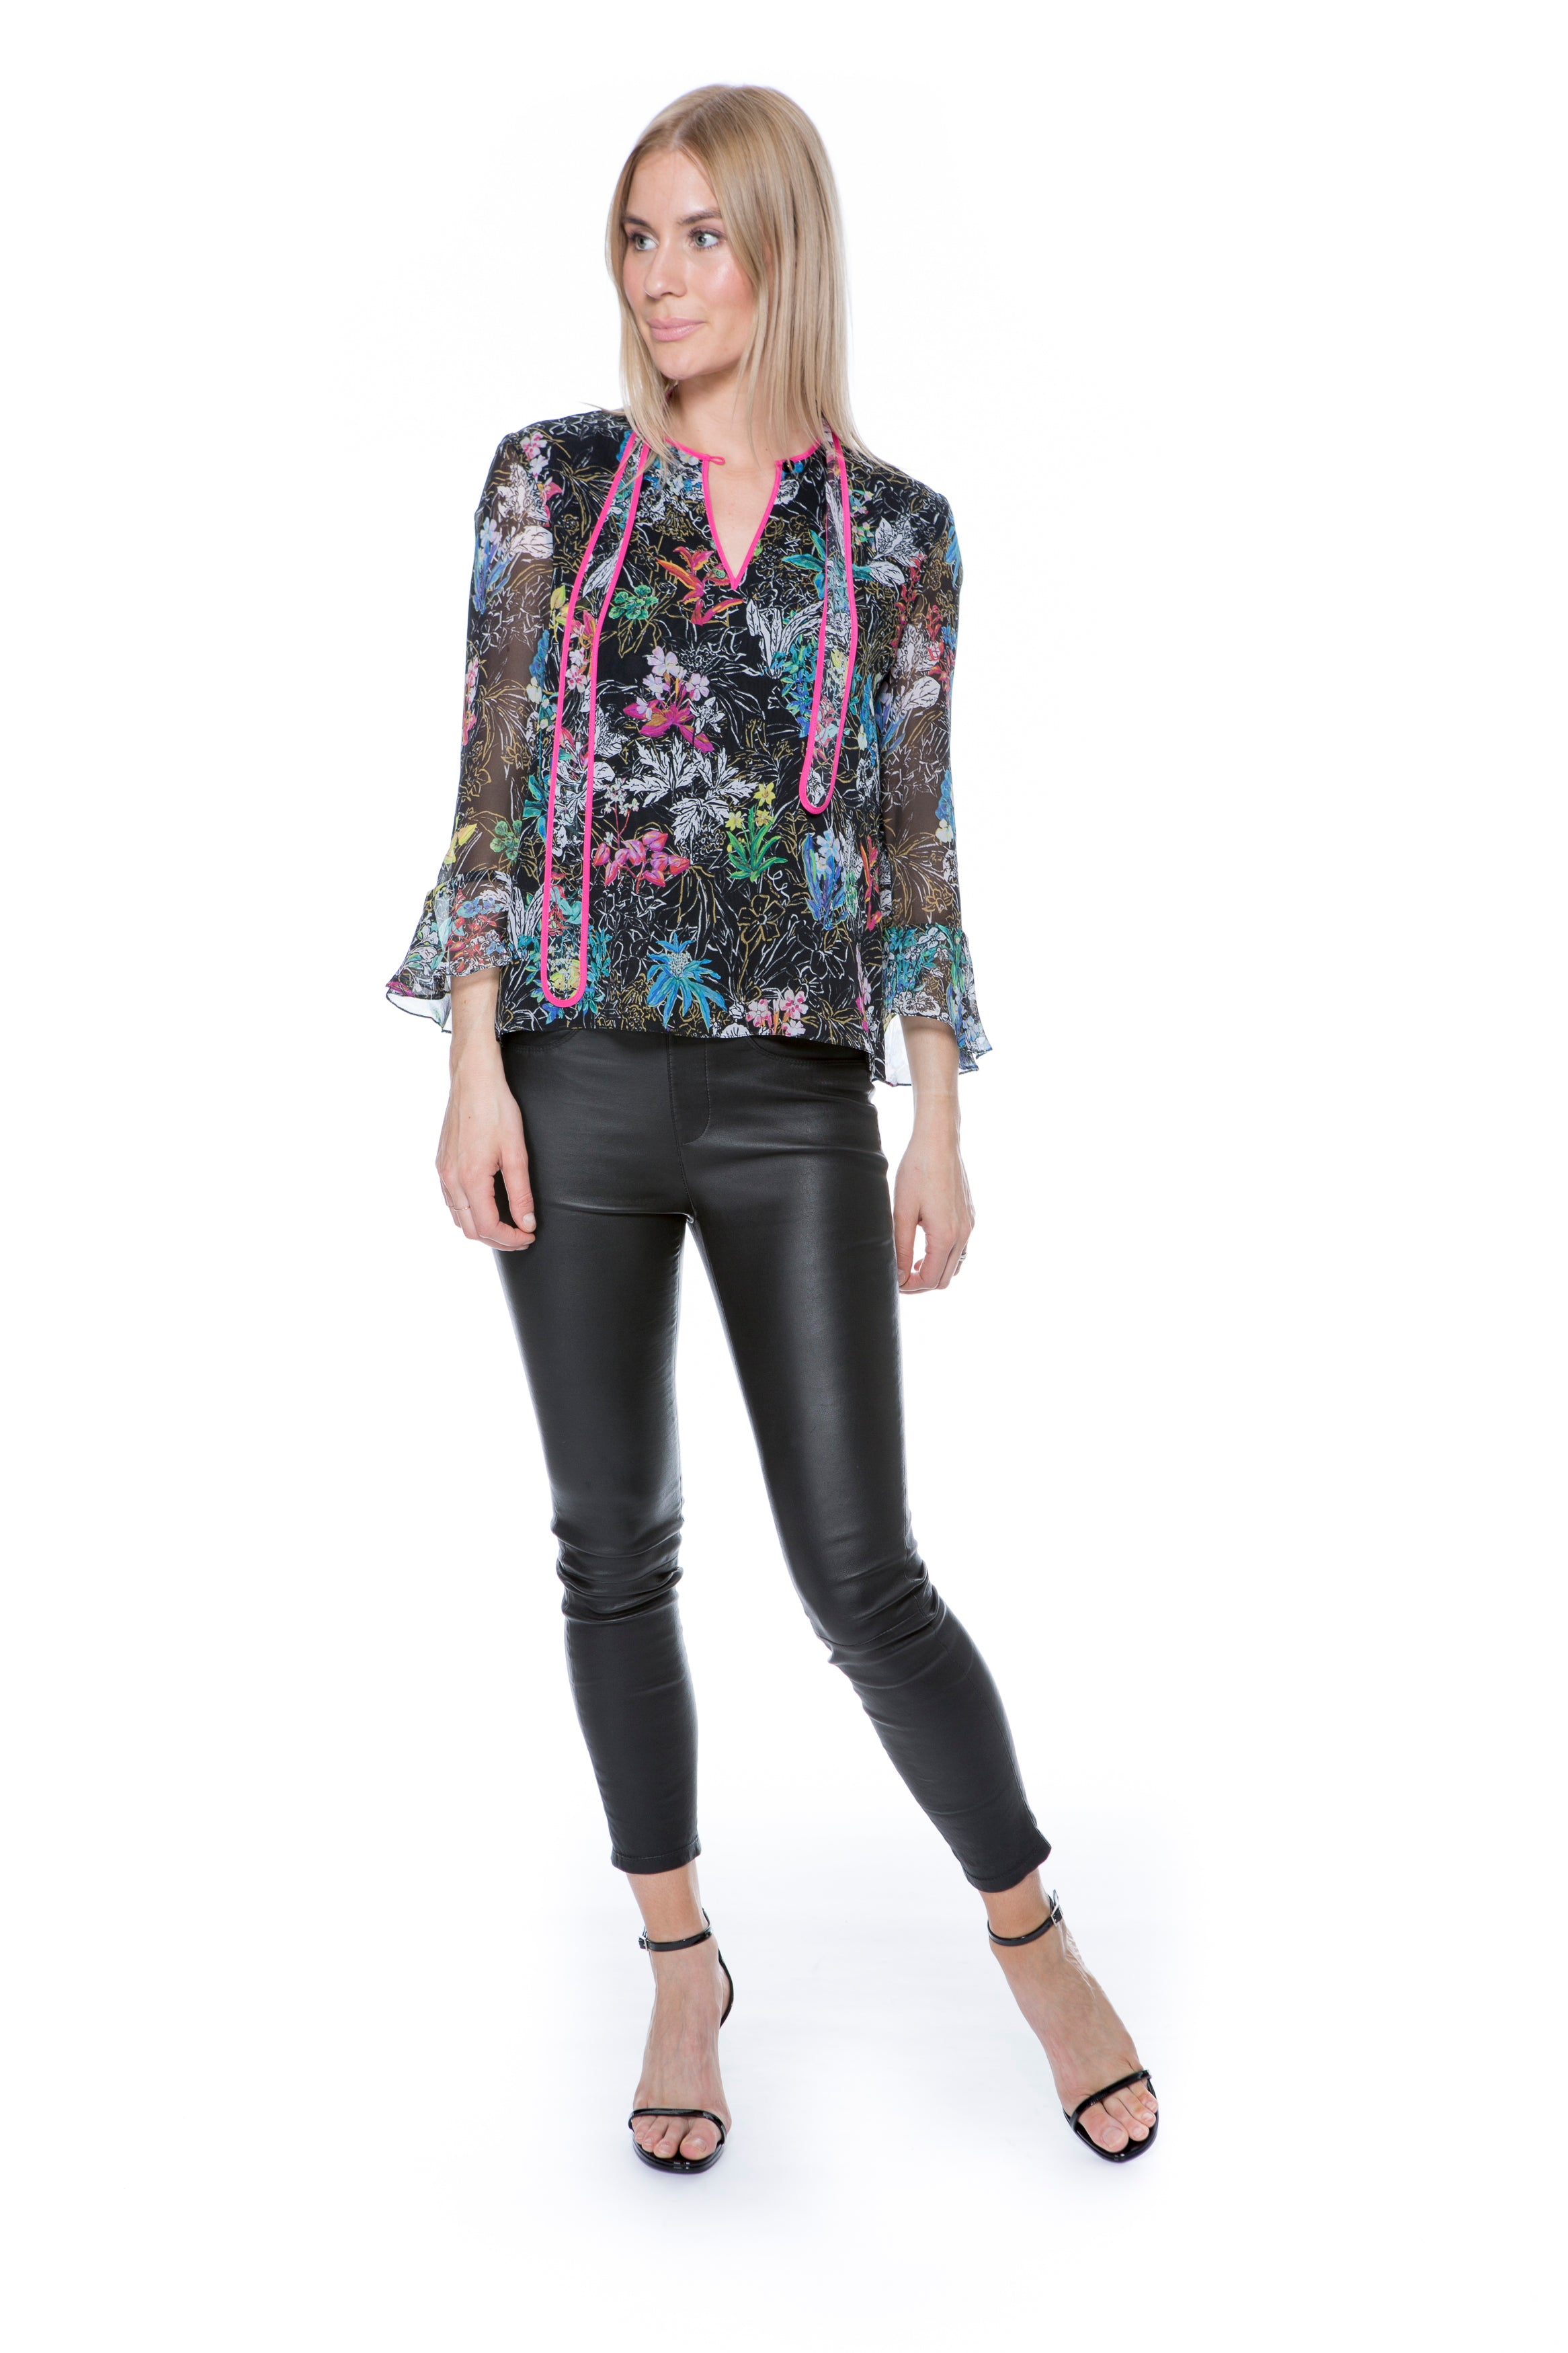 GEORGETTE TIE BLOUSE BLACK FLORAL